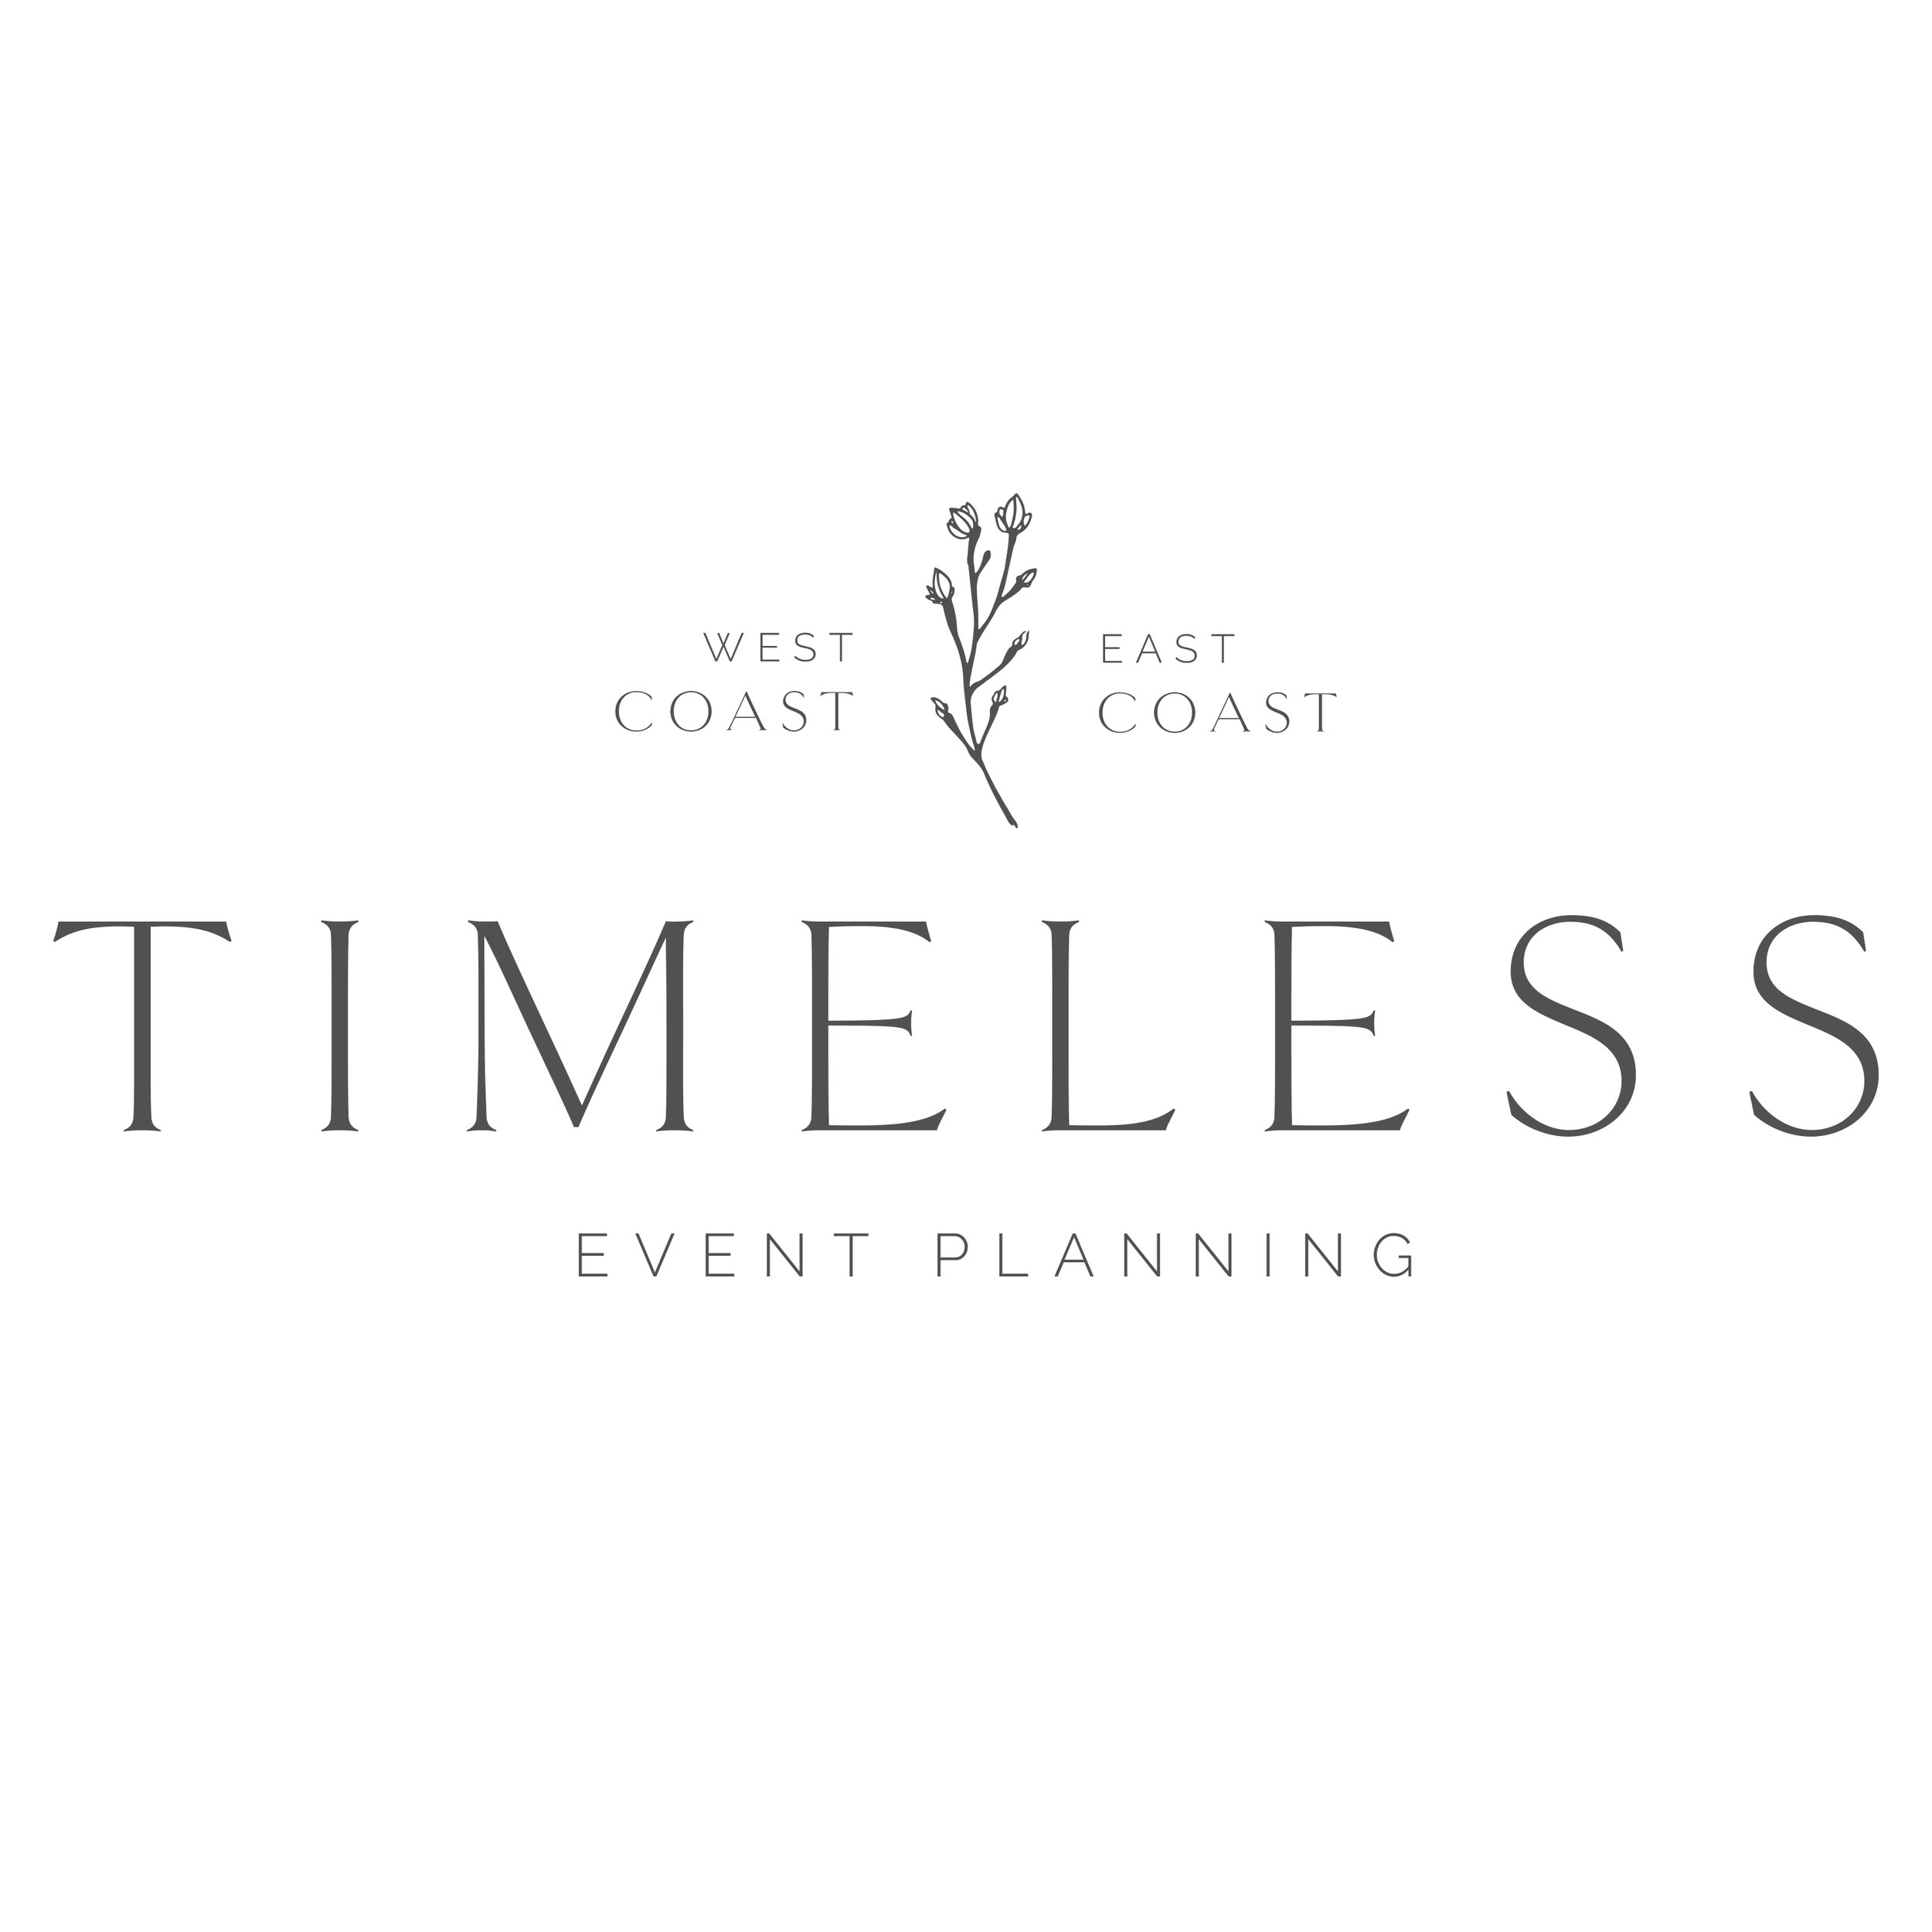 Timeless Event Planning by Magnolia Creative Studio